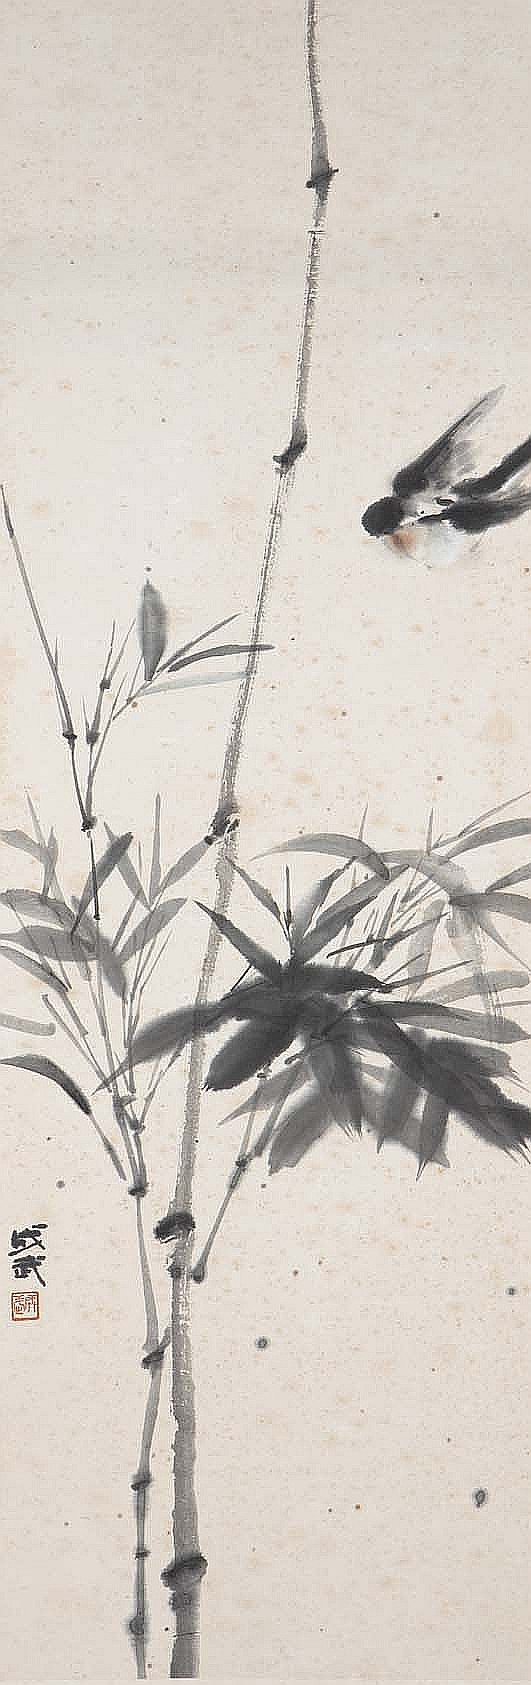 FEI CHENGWU (1911 – 2000) AND ZHANG QIANYING (1909 – 2003). Bird and flowers, signed Chengwu, with one seal of the artist, 92 x 30cm; Yu hong lou, 1974, signed Qianying with two seals of the artist, 48x 130cm; haiwai cunzhi yi tianya ruo bilin, 1974, signed Qianying with two seals of the artist, 45 x 104cm. (3) Provenance: Collection of Mr (1926 –) and Mrs Chen (1930 –), gifted to them by Fei Chengwu and Zhang Qianying. ???(1911 – 2000) ???????????????? ???(1909 – 2003) ????????? ???? ?????????????? ?????? ?????????? ??? ?? ???? ??????????????